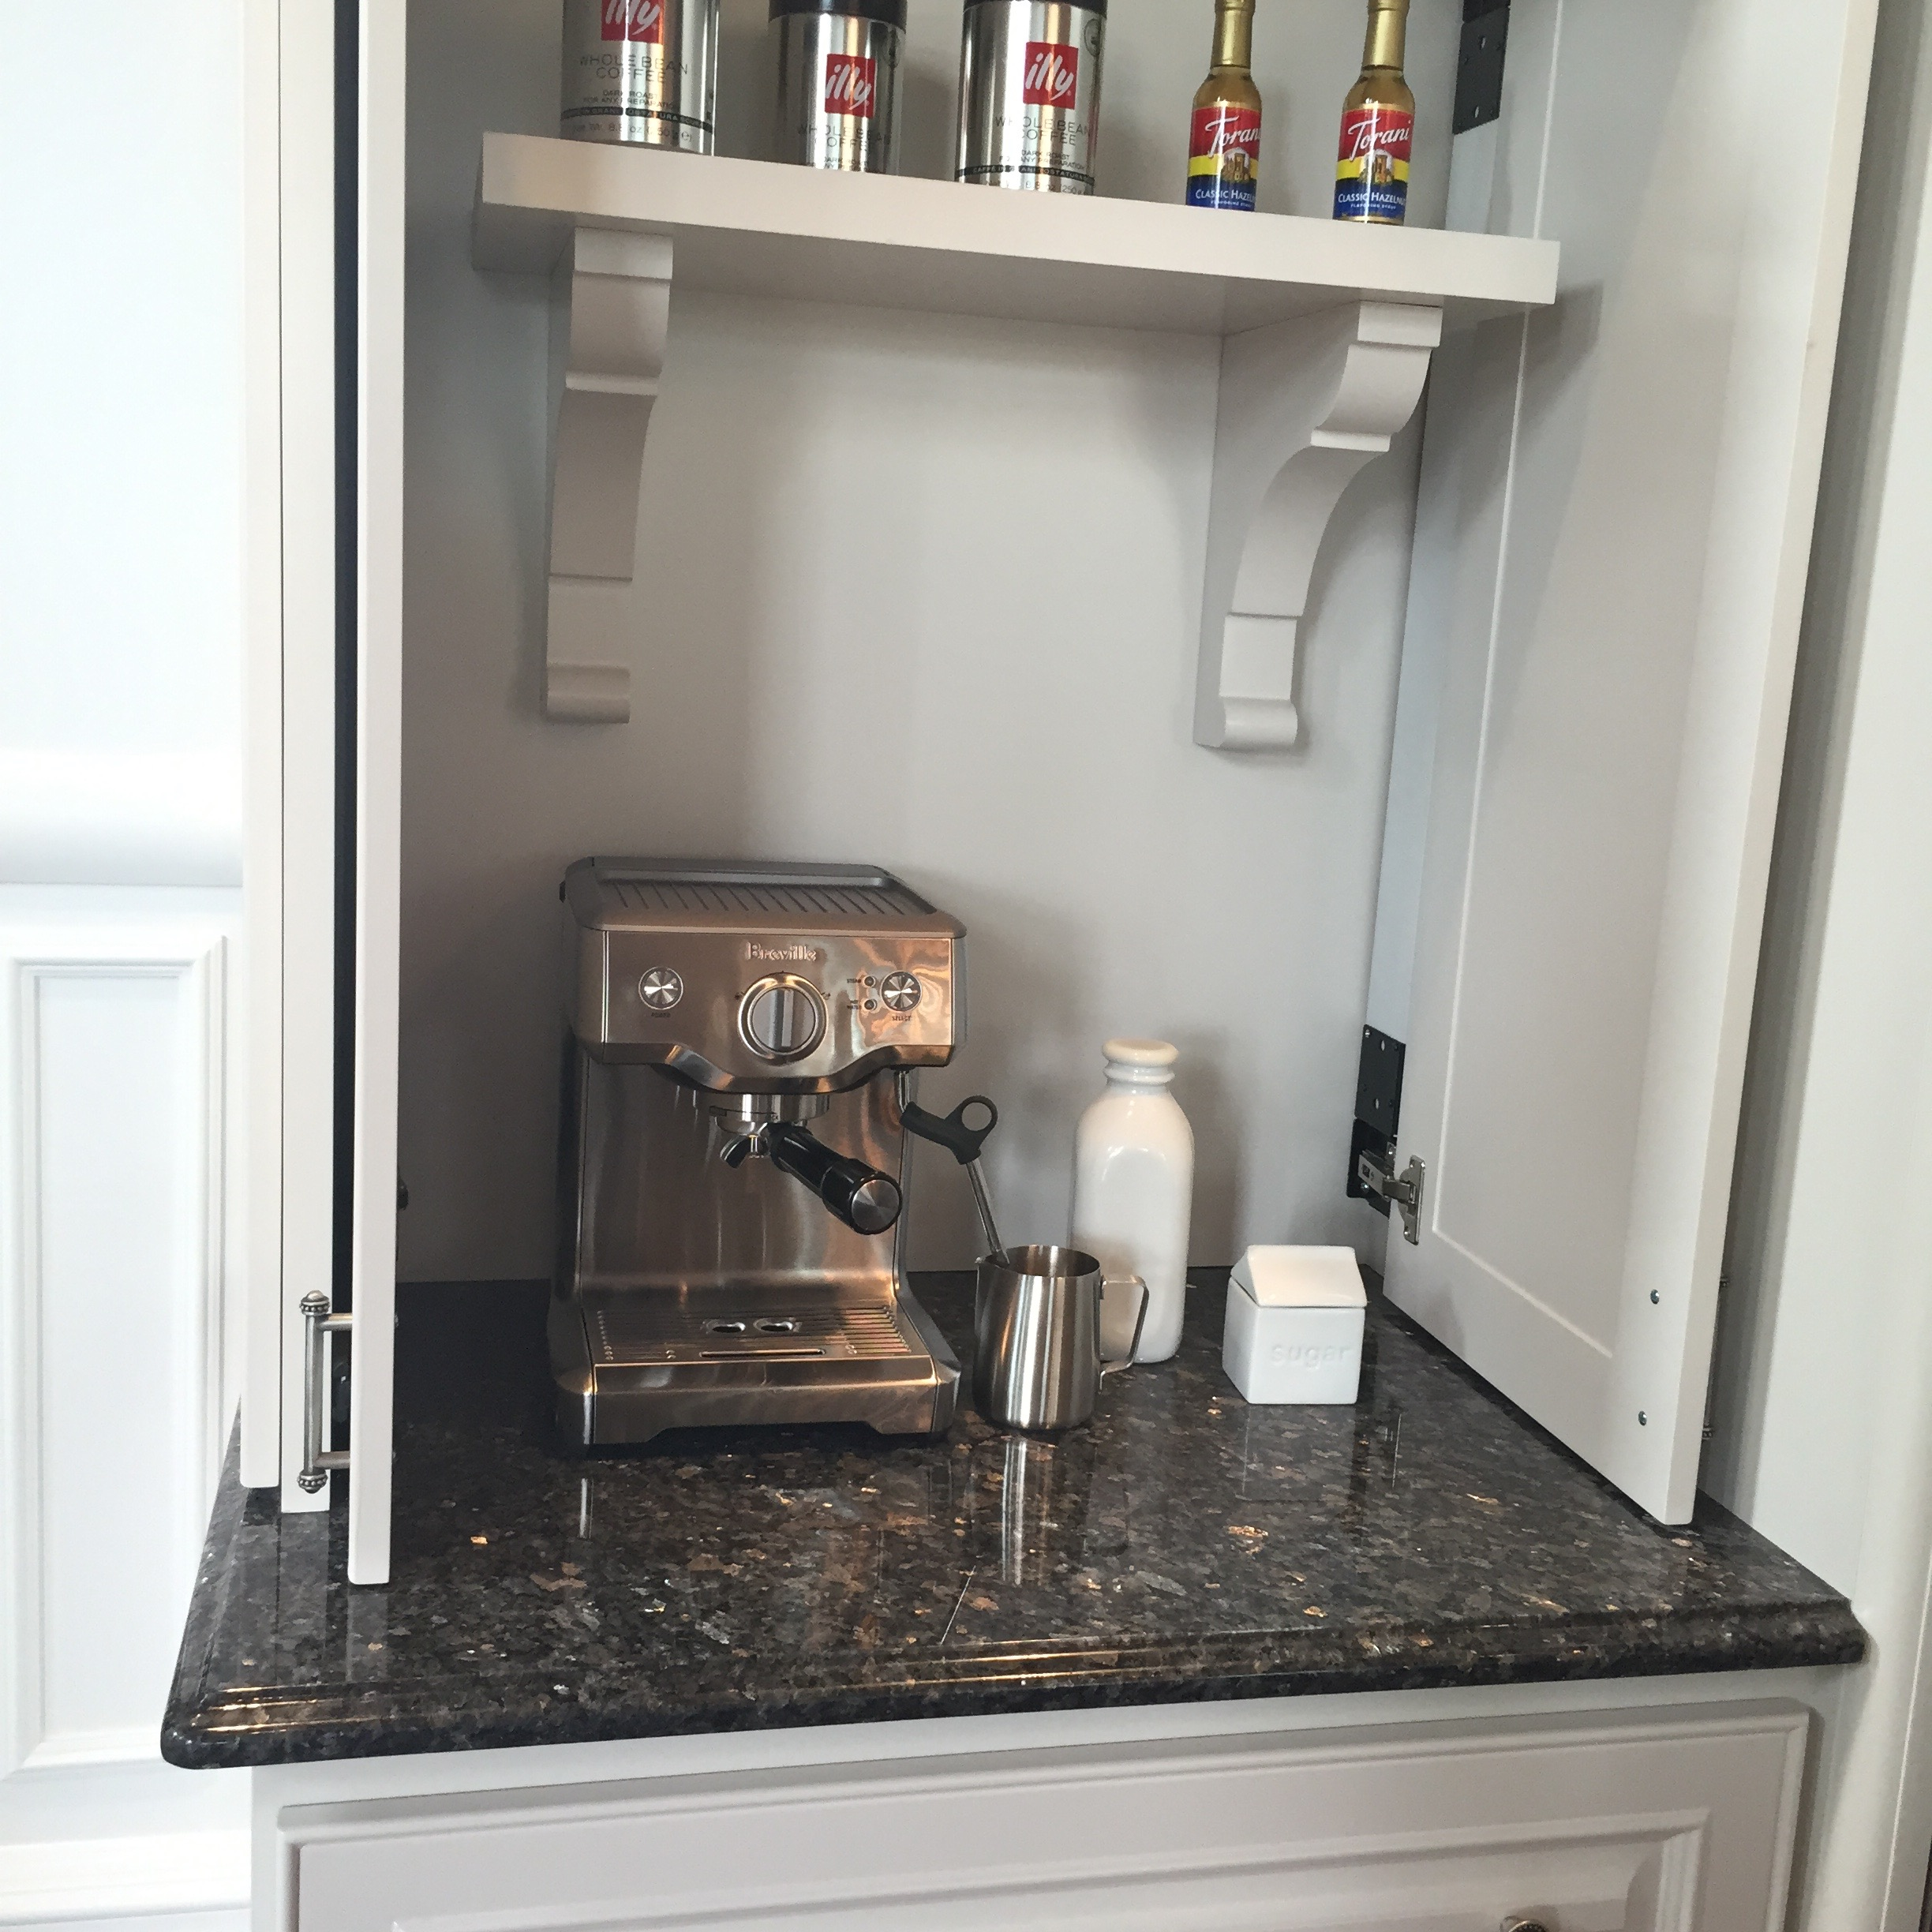 I loved this coffee nook in the kitchen, what a great idea!